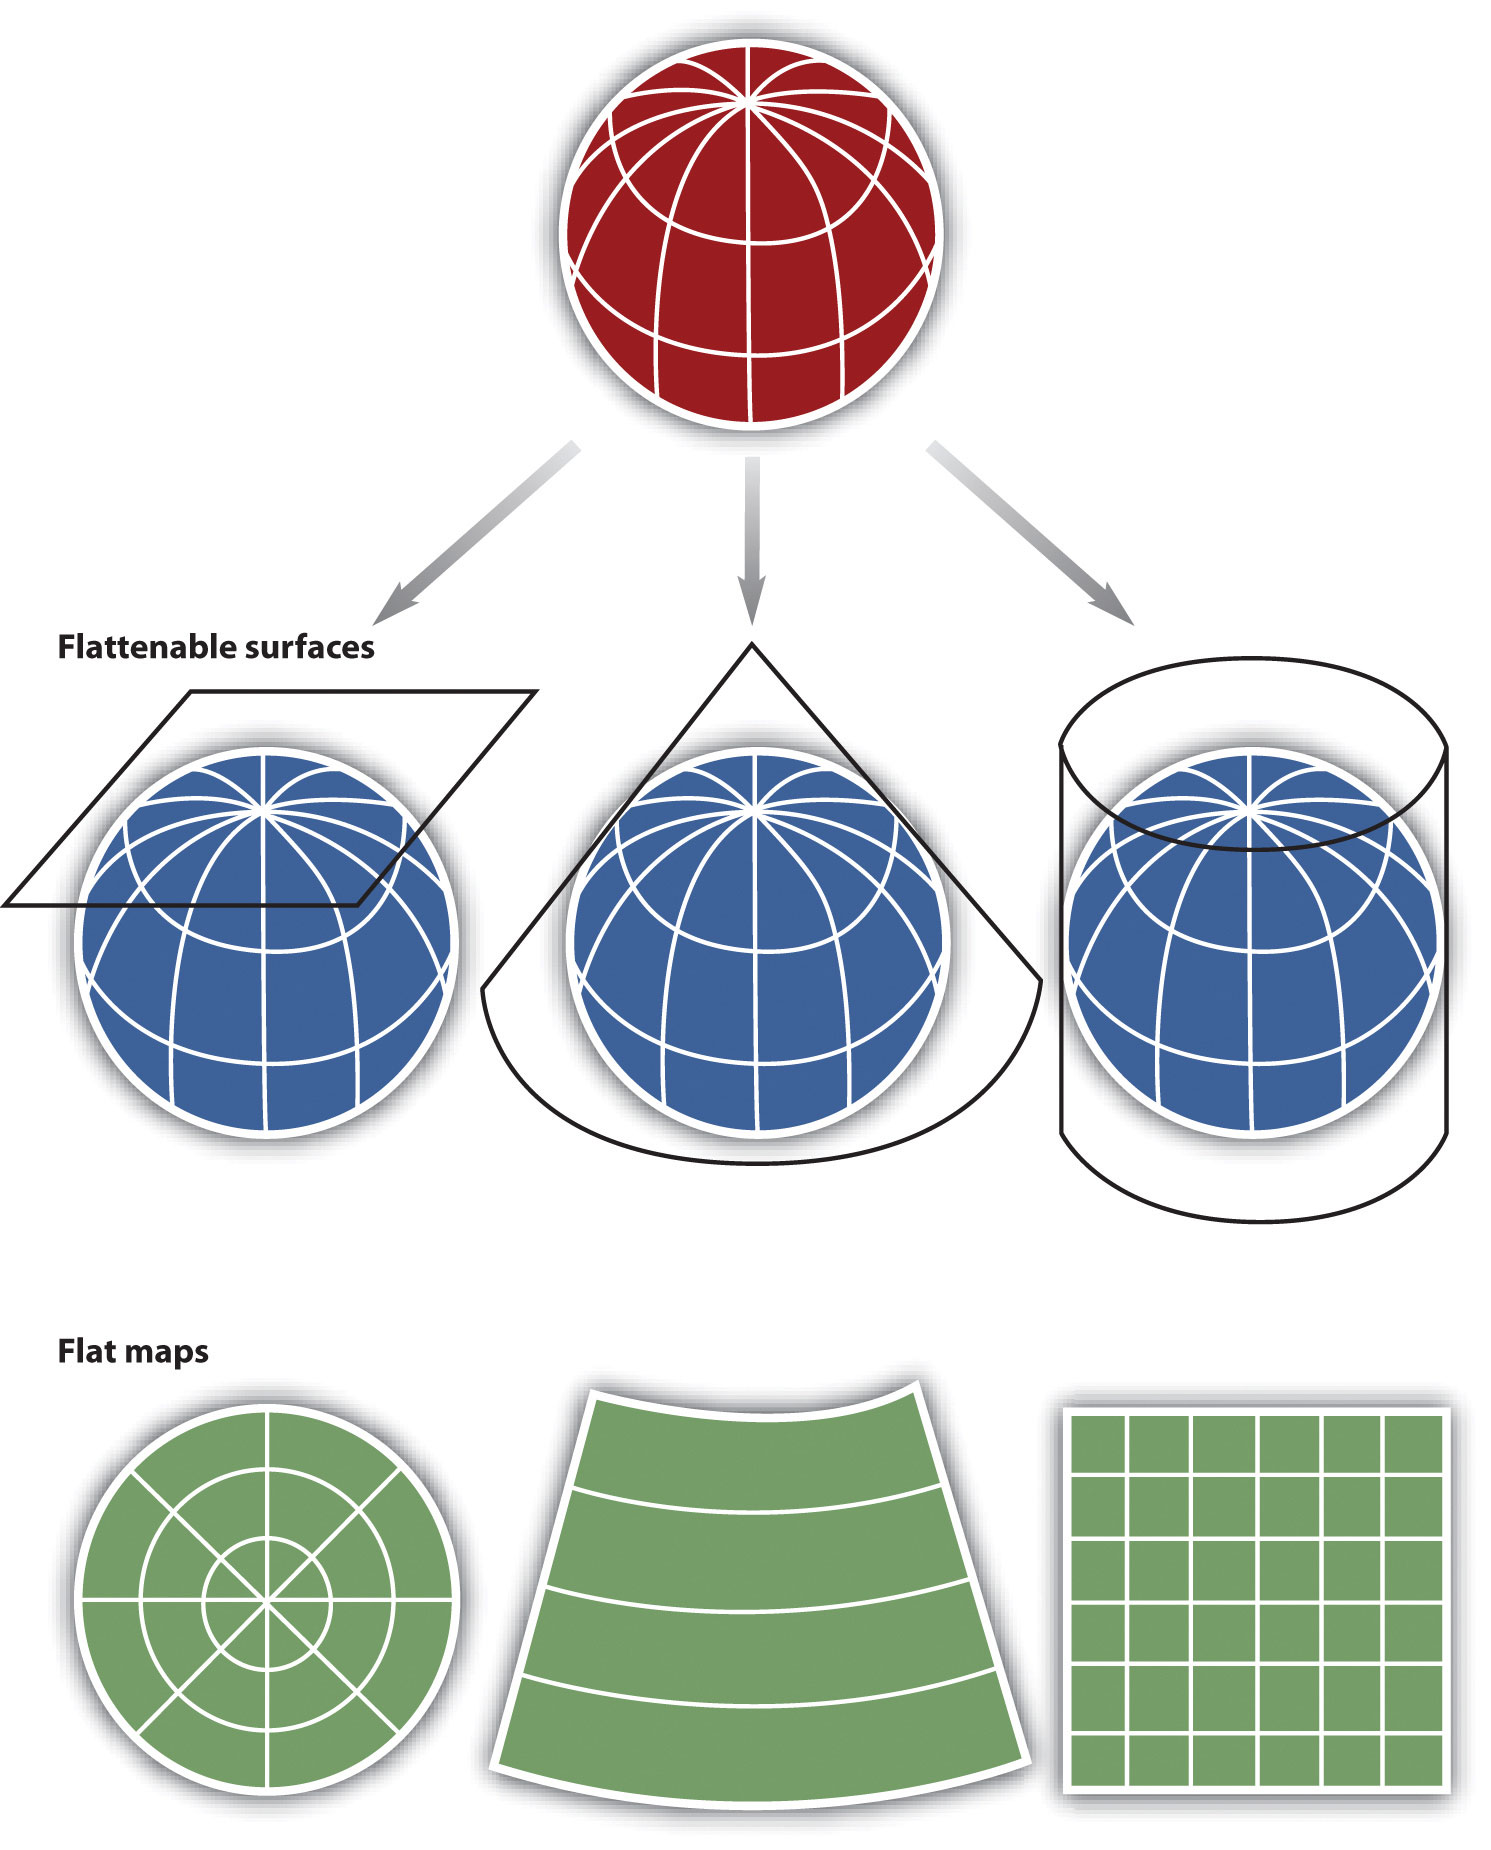 Map Scale, Coordinate Systems, and Map Projections.